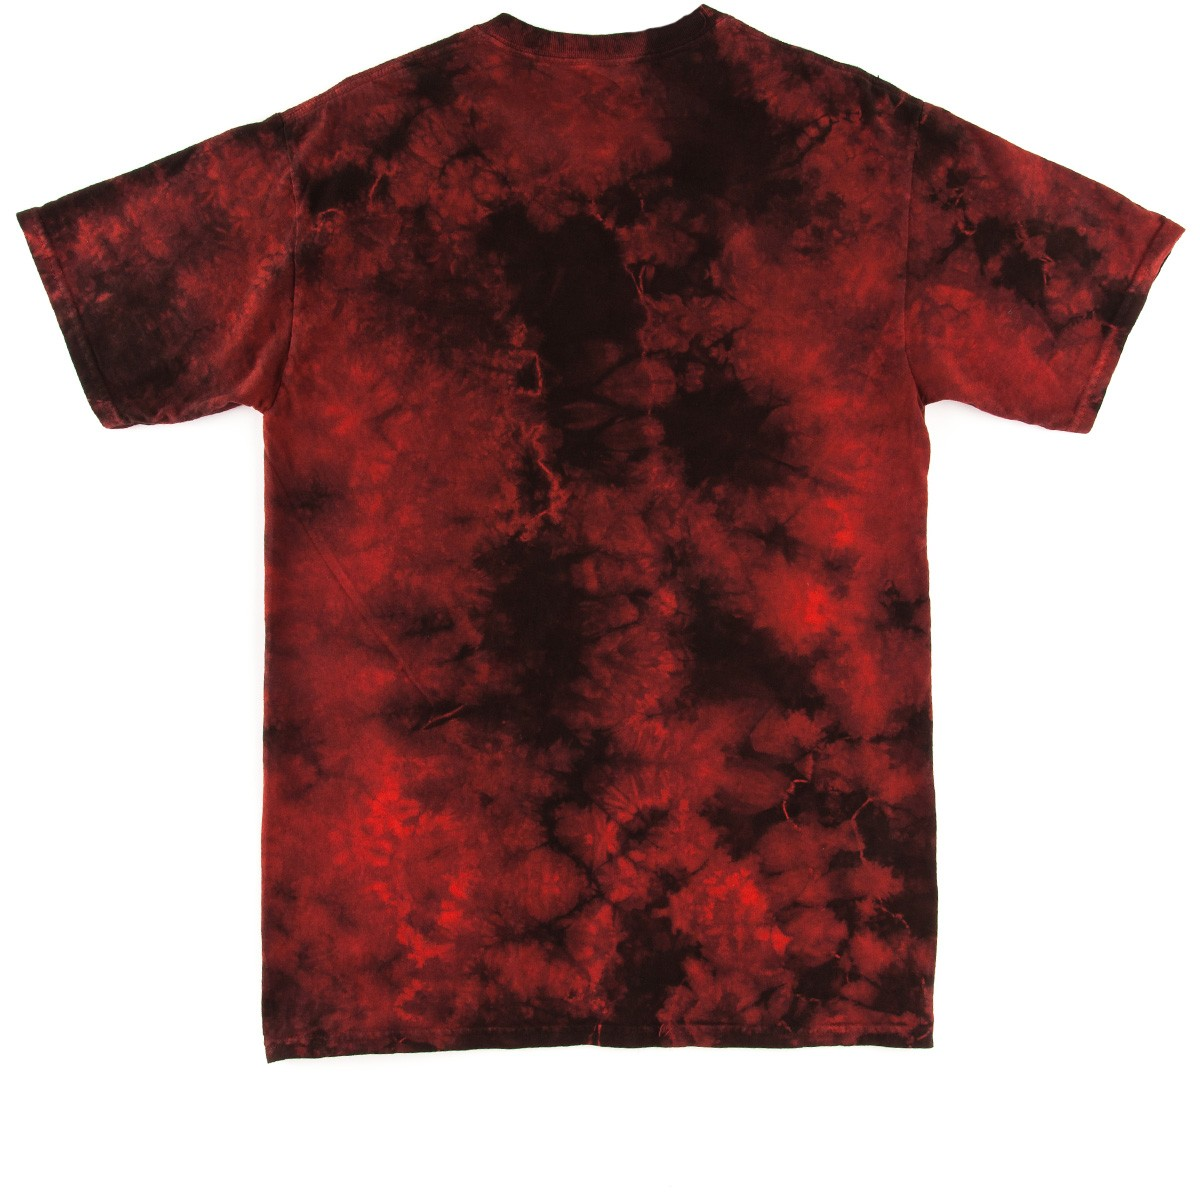 Gold first issue t shirt red black twist tie dye for How to dye a shirt red